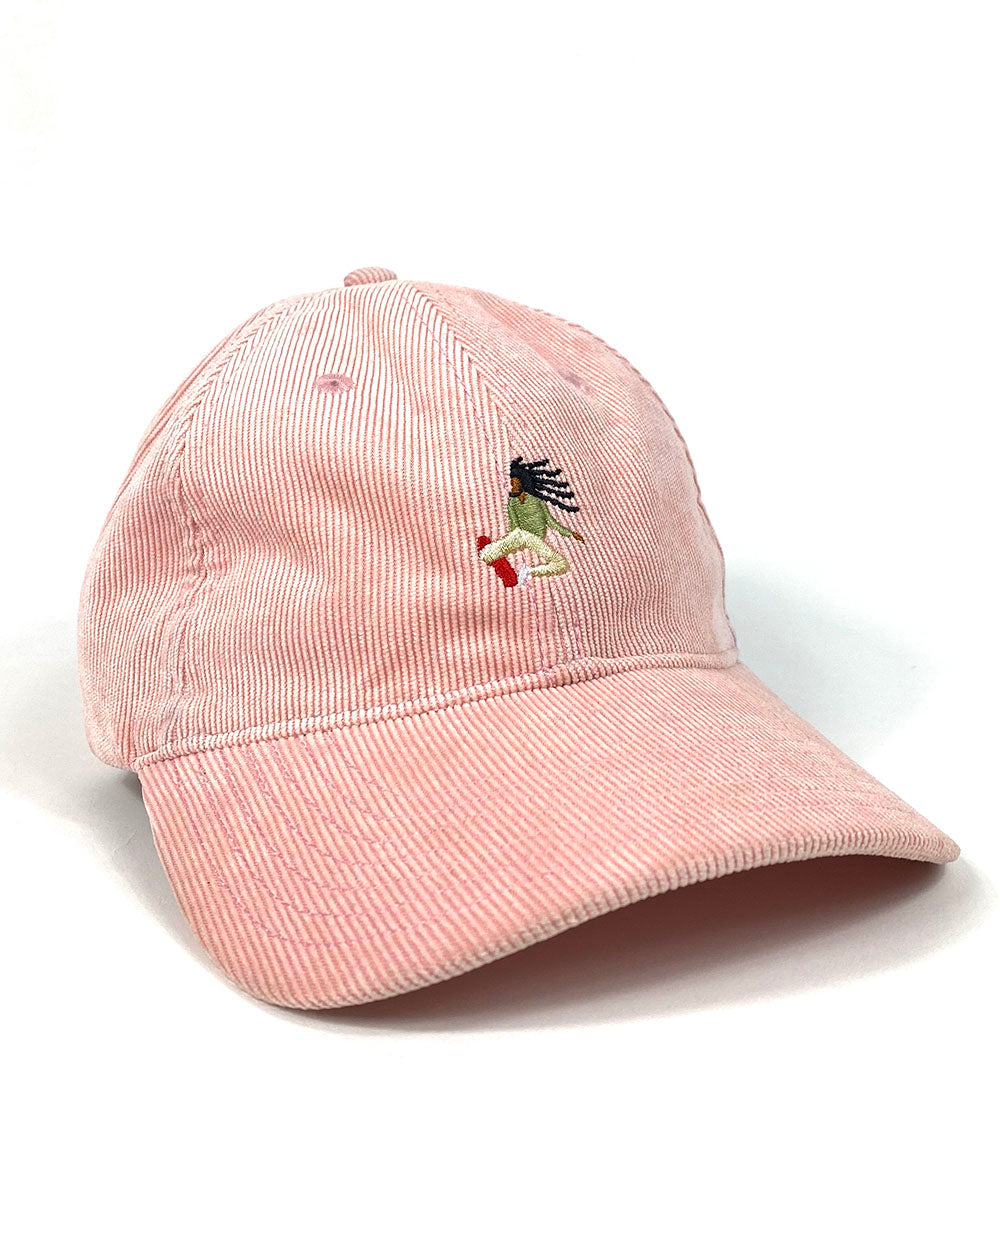 """Vibes"" Pink Embroidered corduroy dad hat"